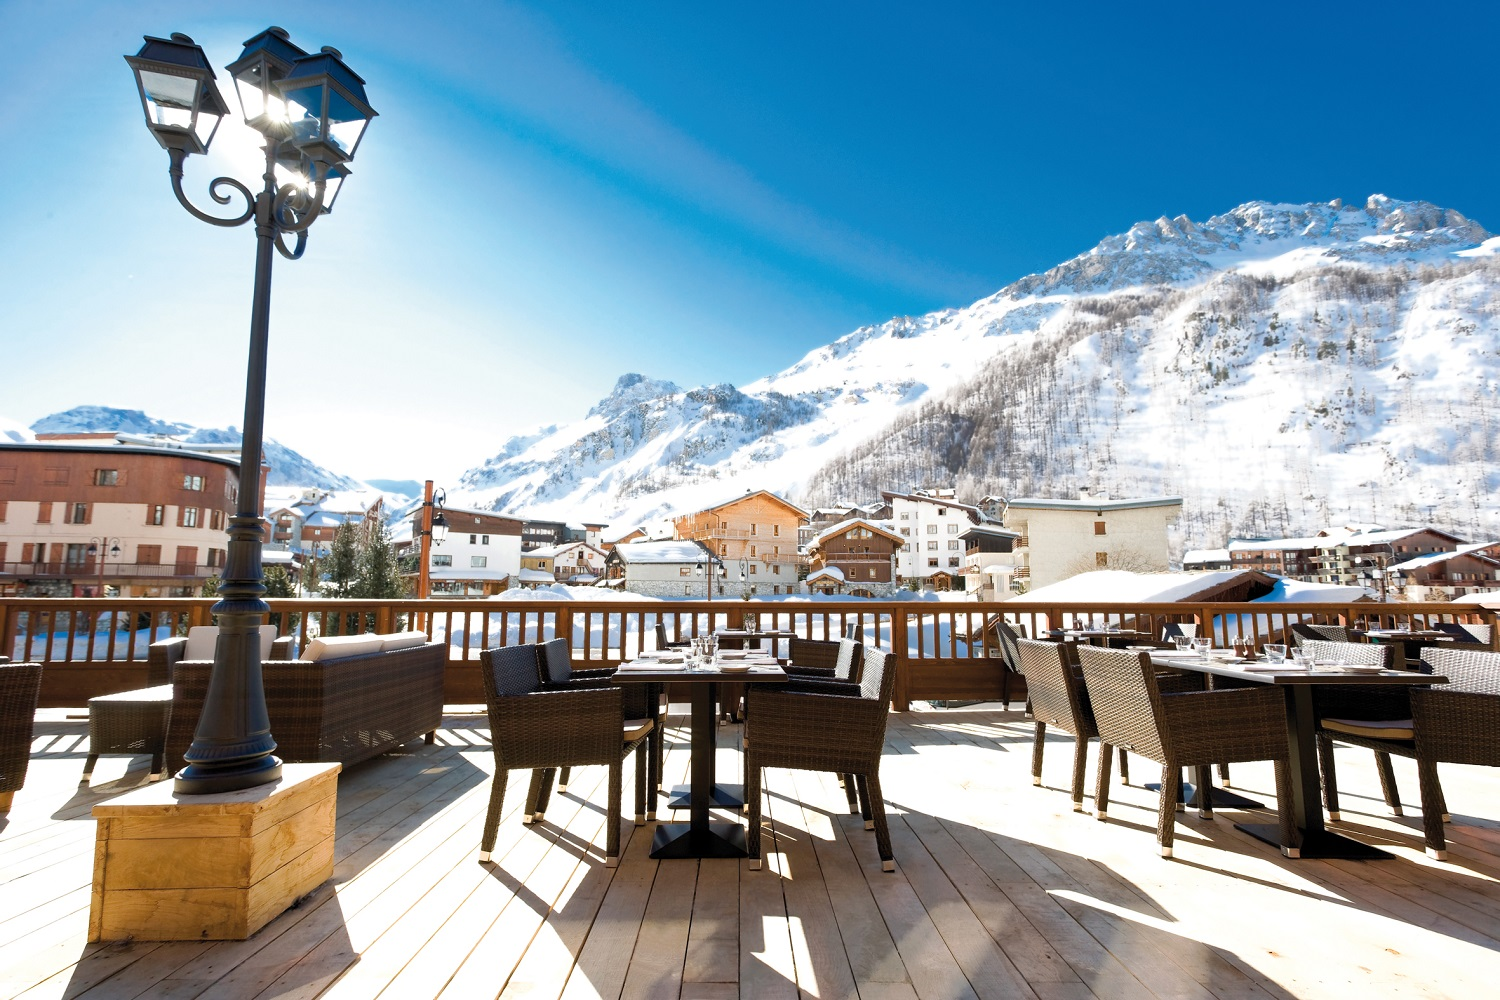 Inghams Chalet Hotel & Spa Le Savoie in Val d'Isere